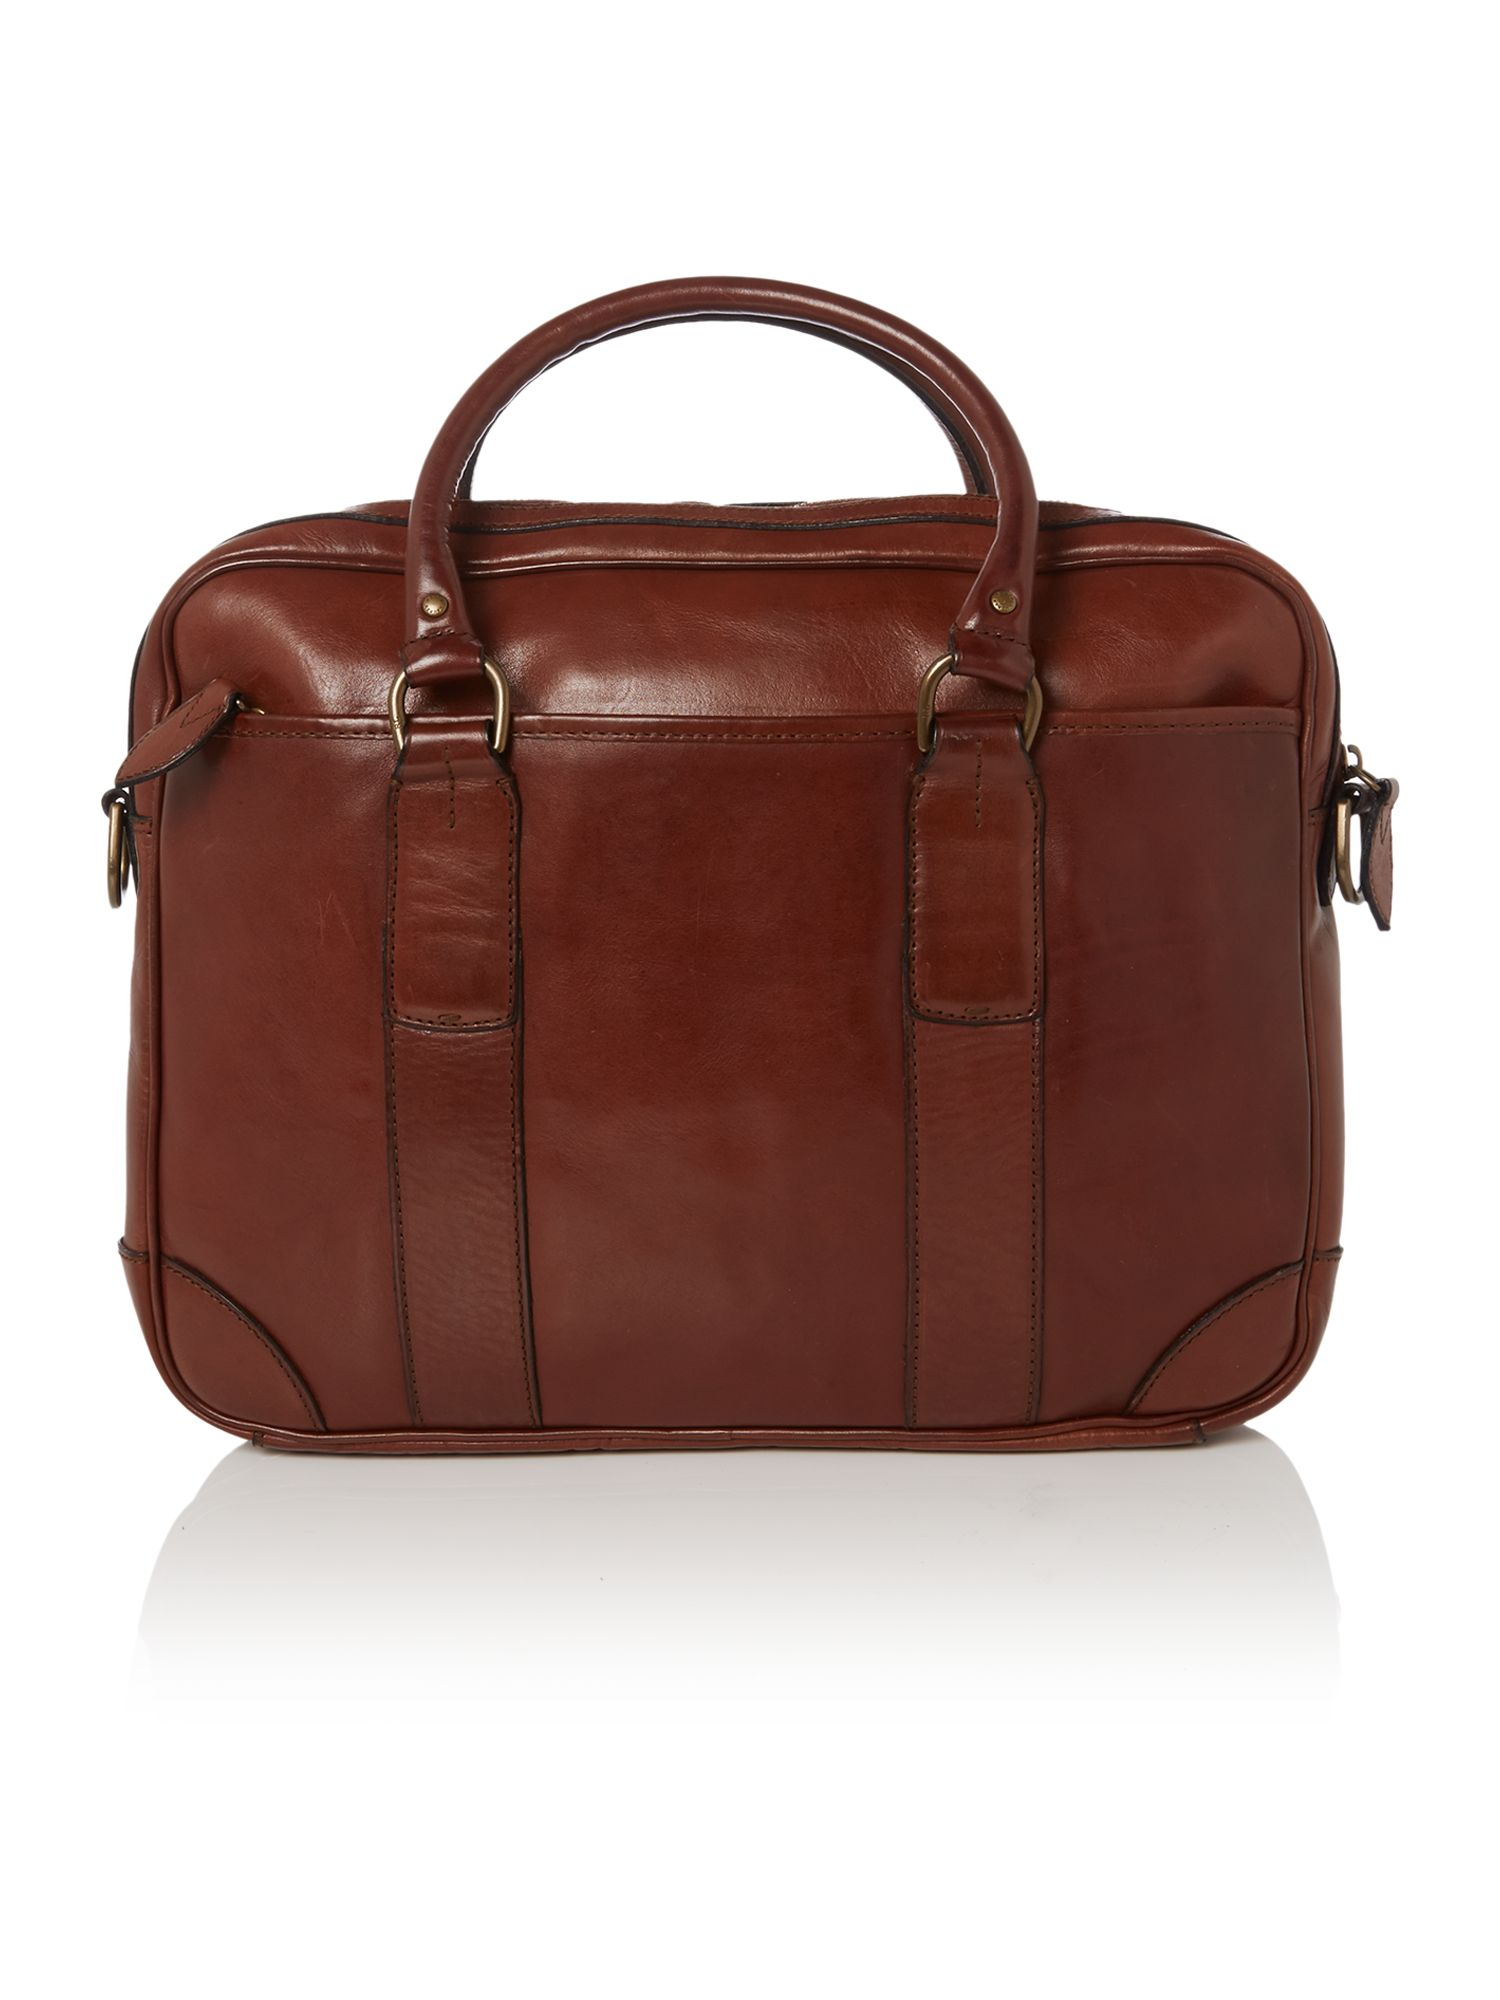 polo briefcase photo - 1